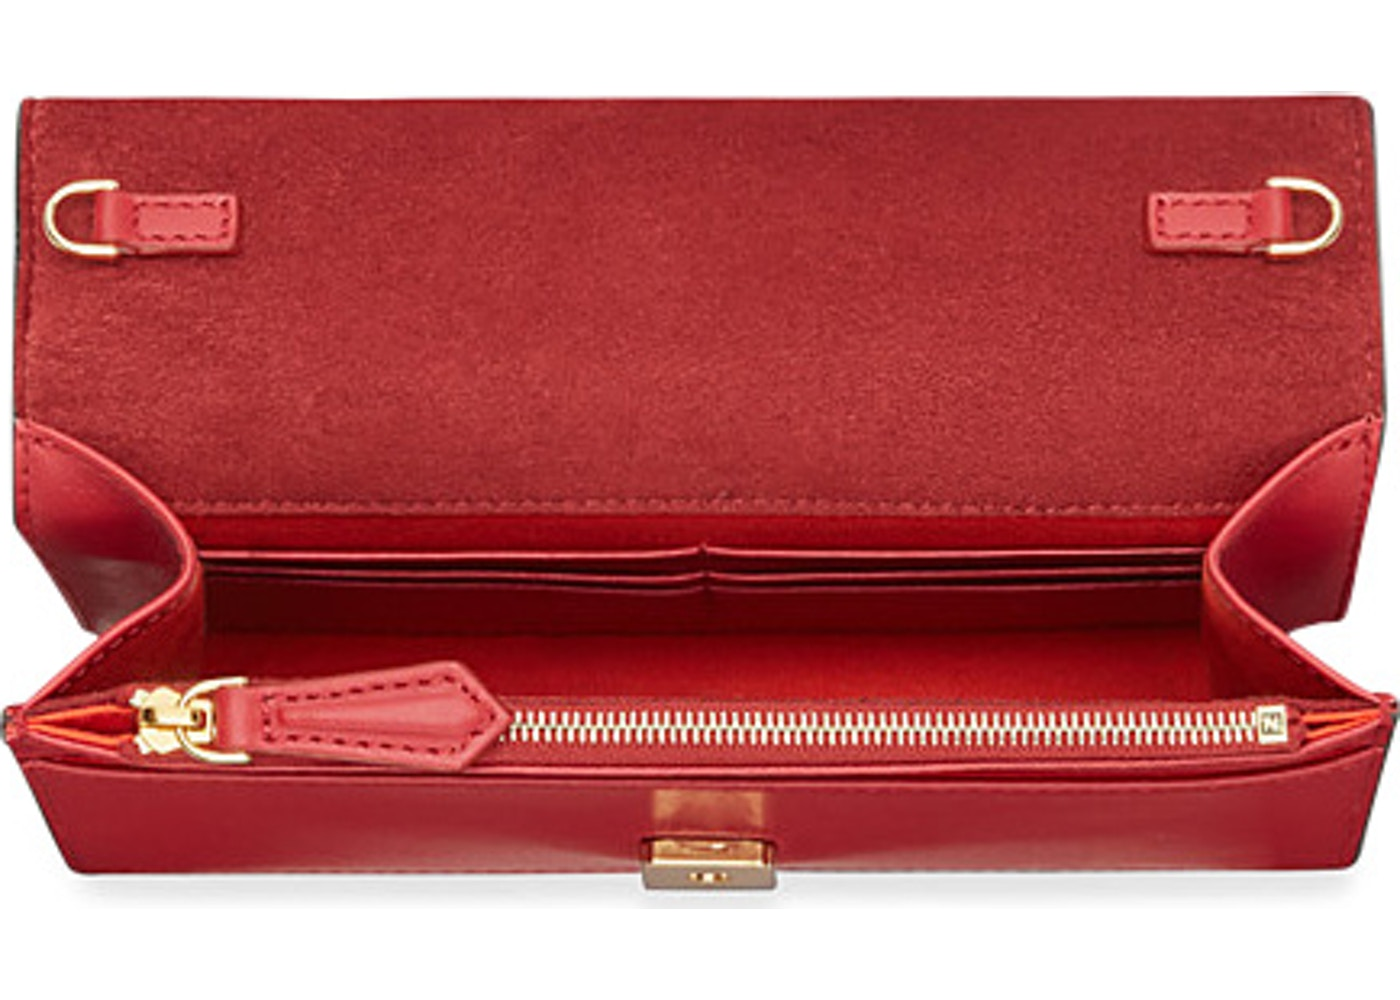 f1648c12ed55a Fendi Wallet on Chain Bag Bugs Red